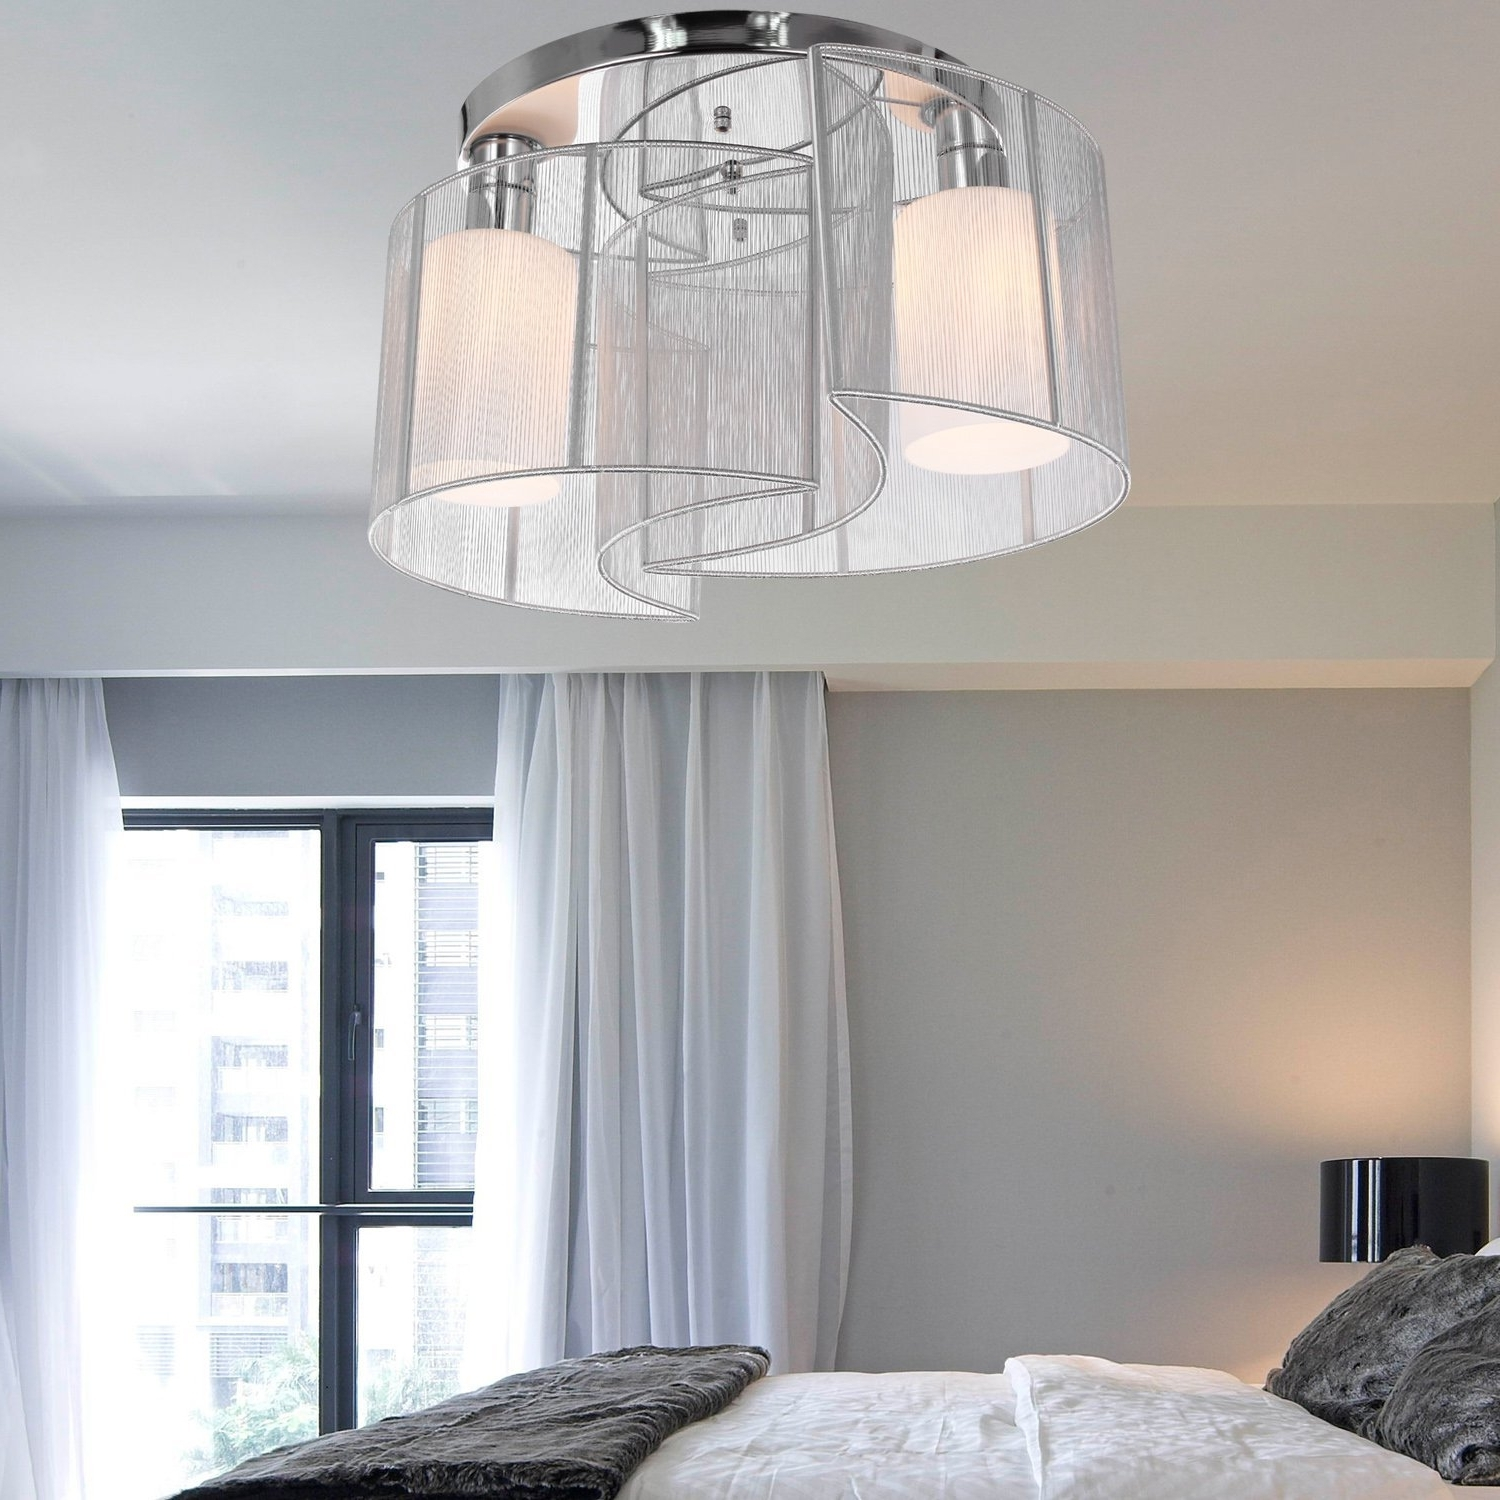 2019 Light Fixture : Night Stand Lamps Master Bedroom Ceiling Ideas Intended For Chandelier Night Stand Lamps (View 2 of 20)